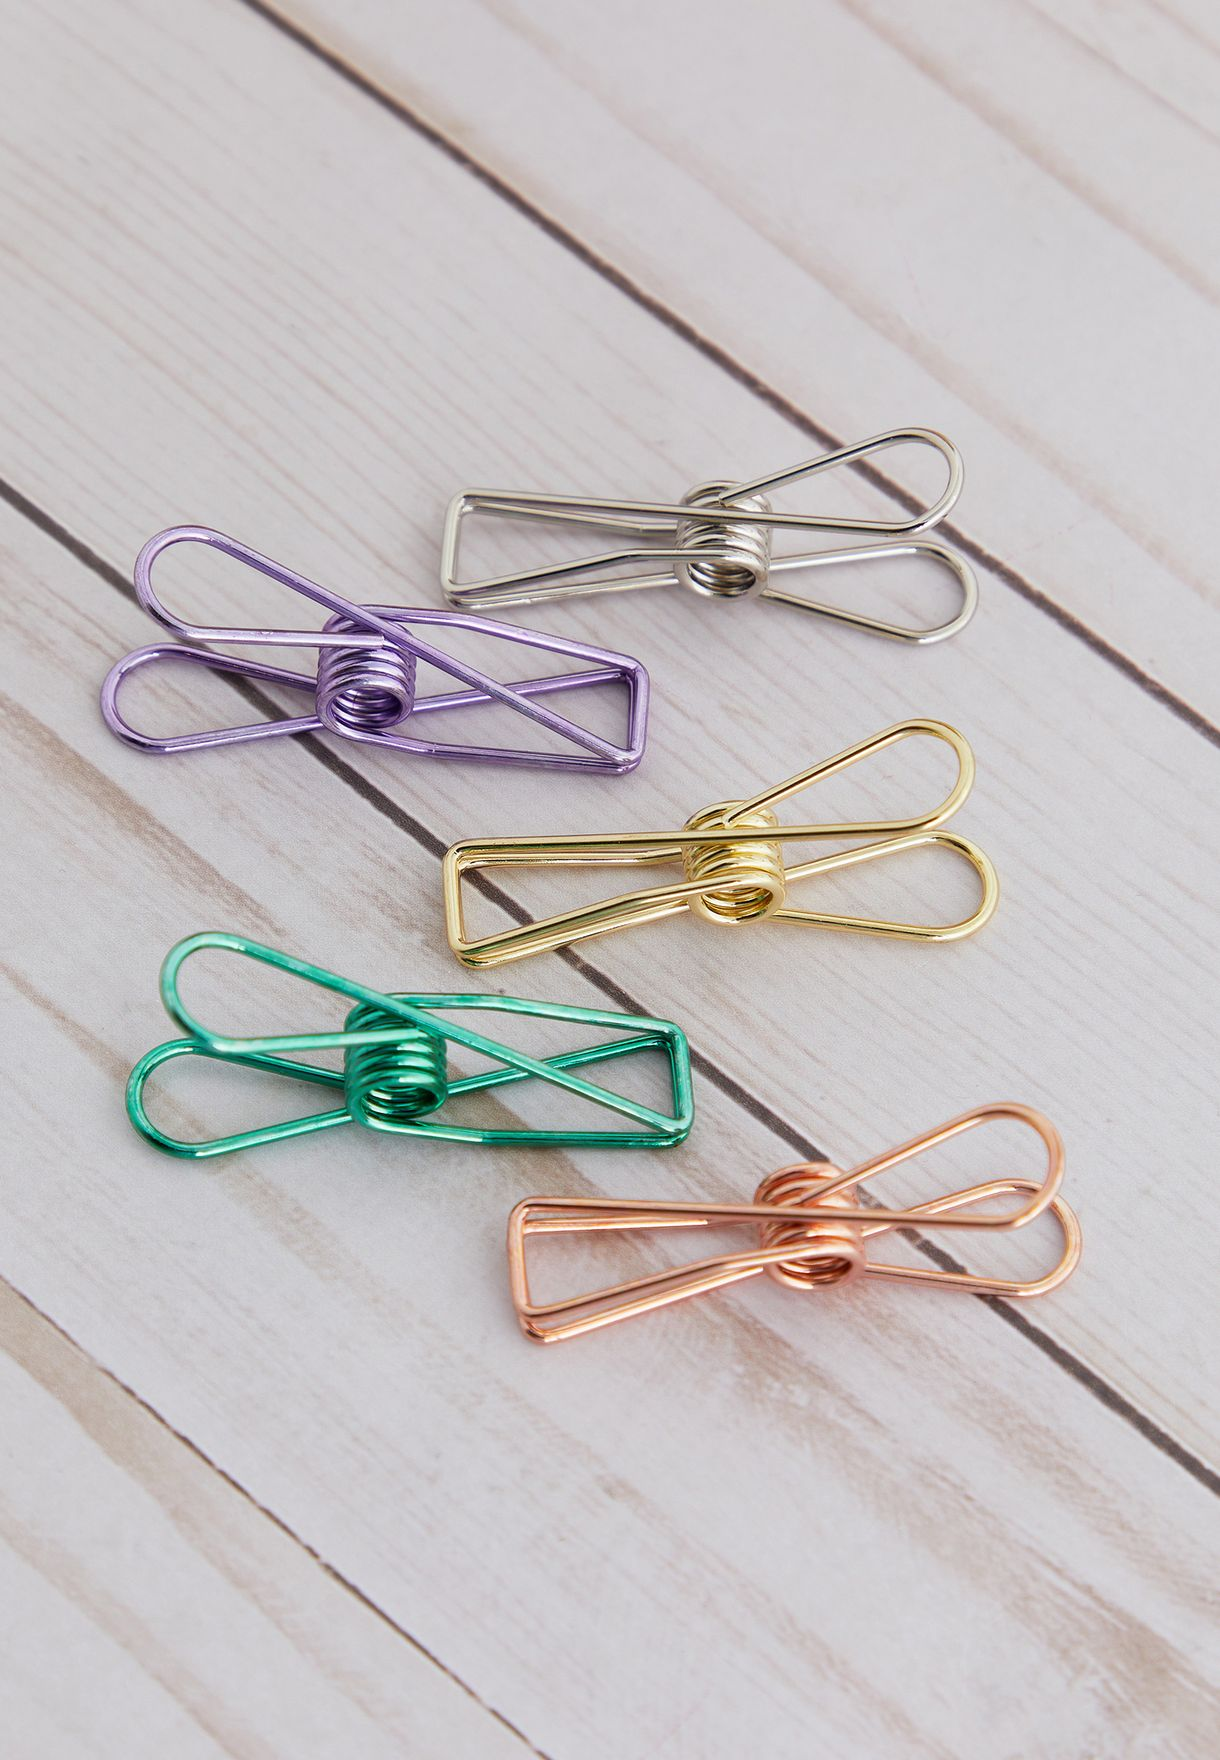 Set of 5 Large Paper Clips